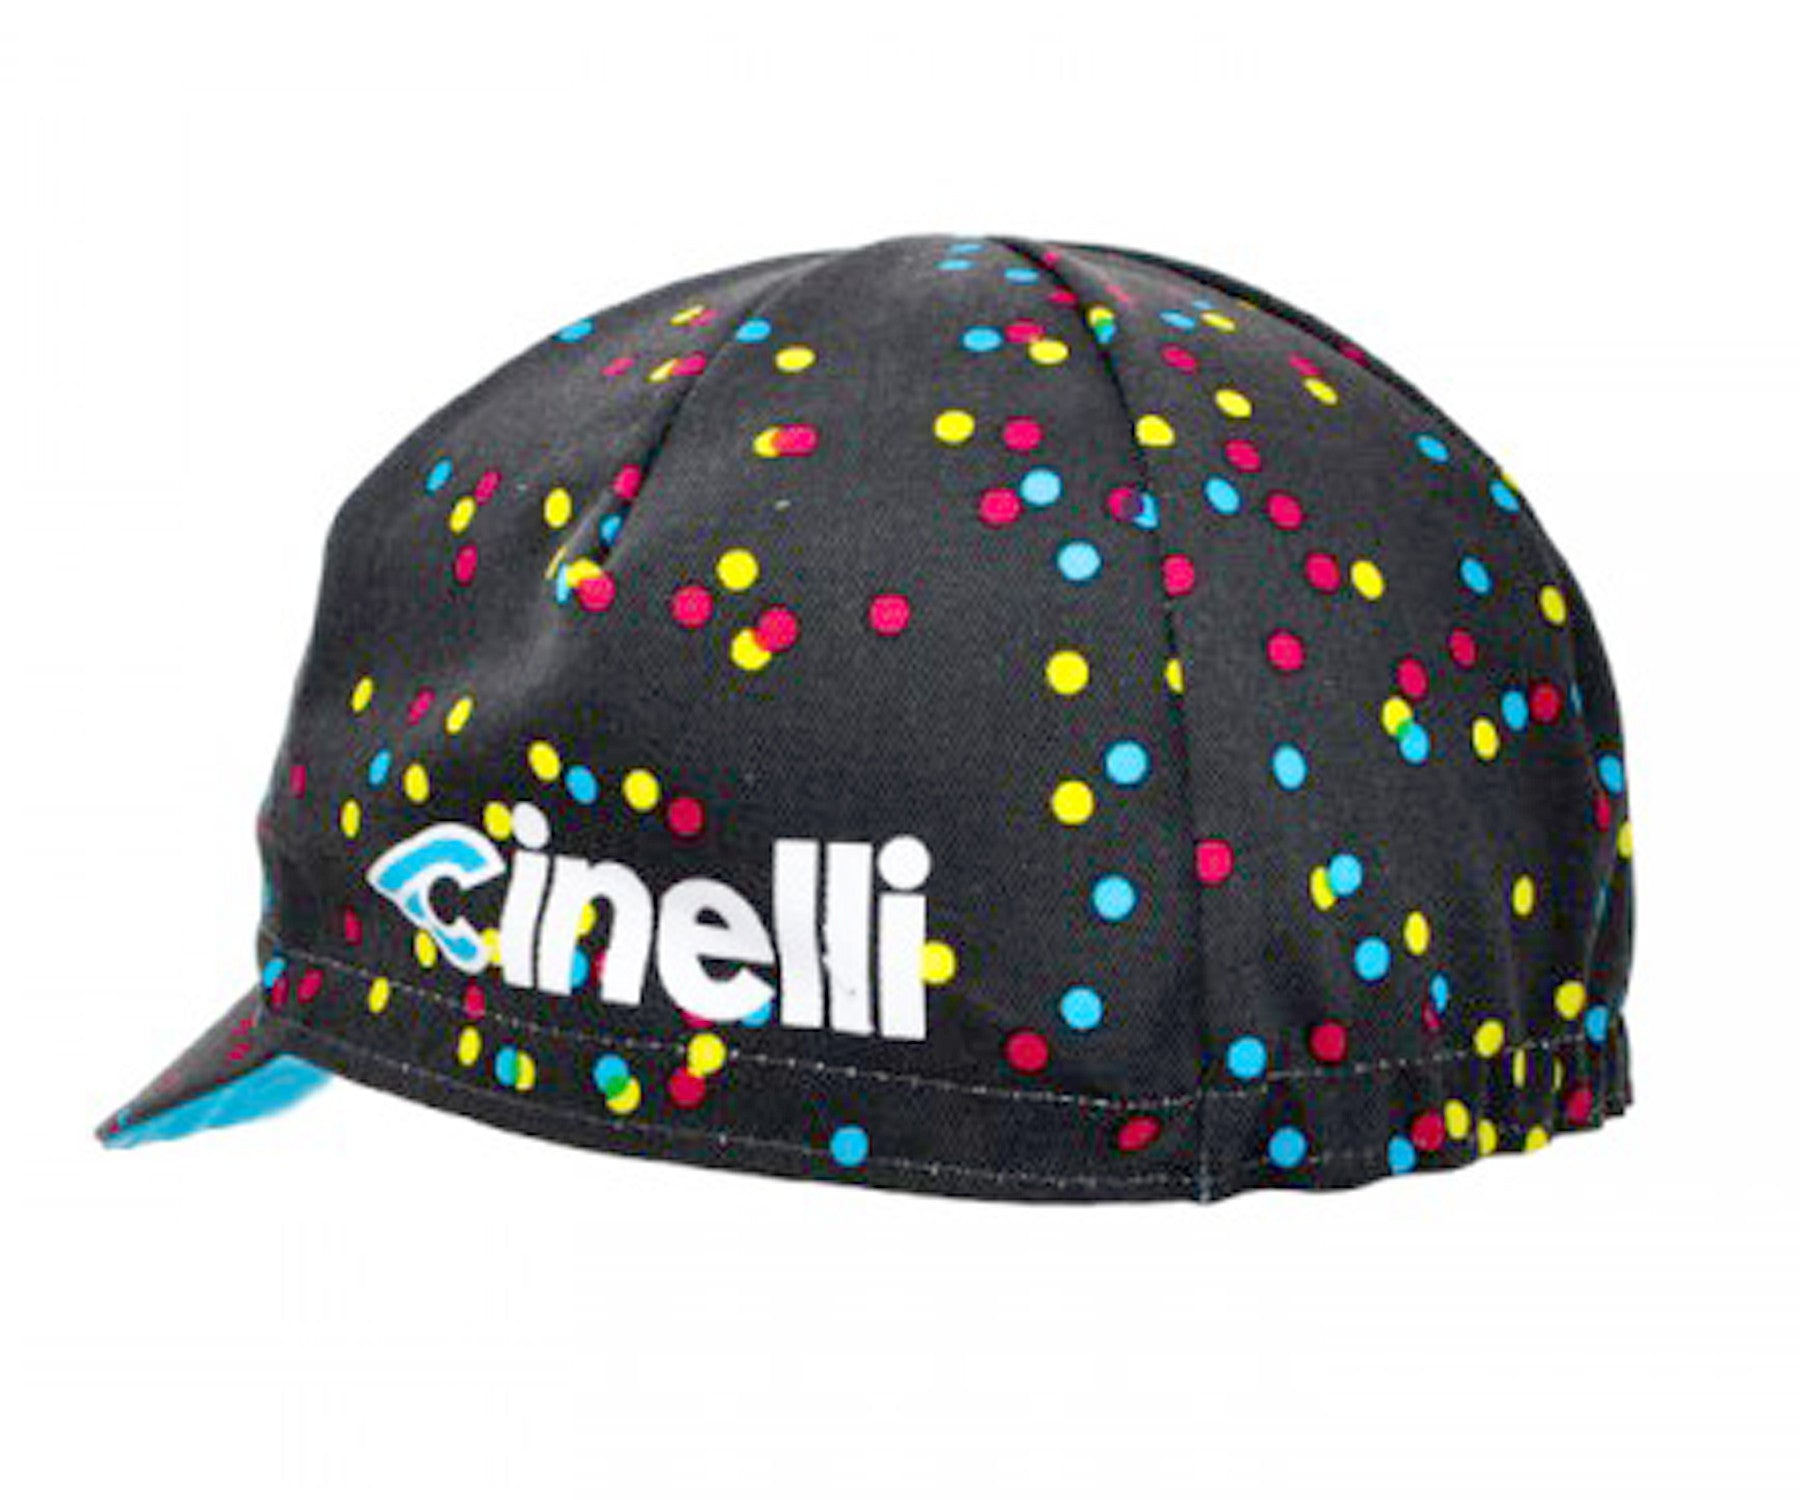 Cinelli Dots cap - Retrogression